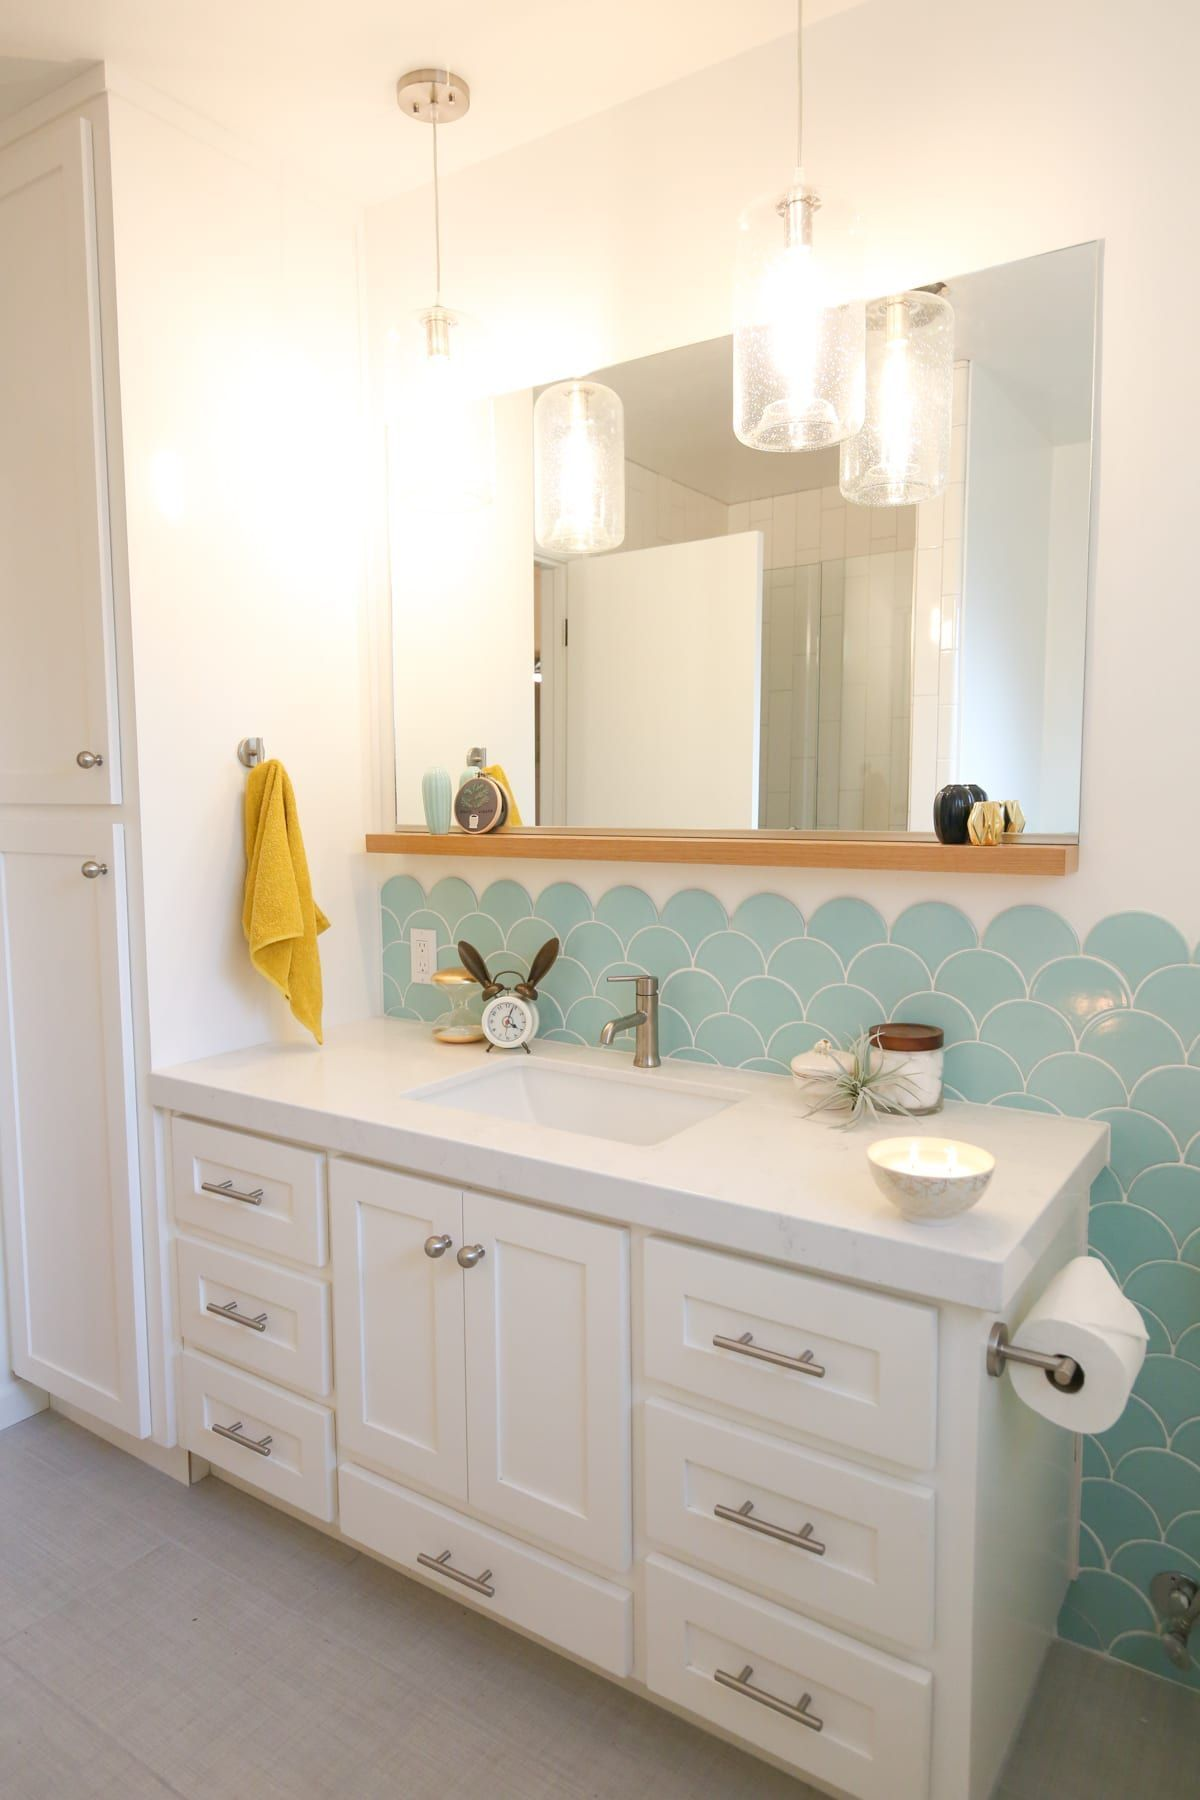 9 Kids Bathroom Decor Ideas To Inspire You Kate Decorates In 2020 Kid Bathroom Decor Stylish Bathroom Kids Bathroom Design